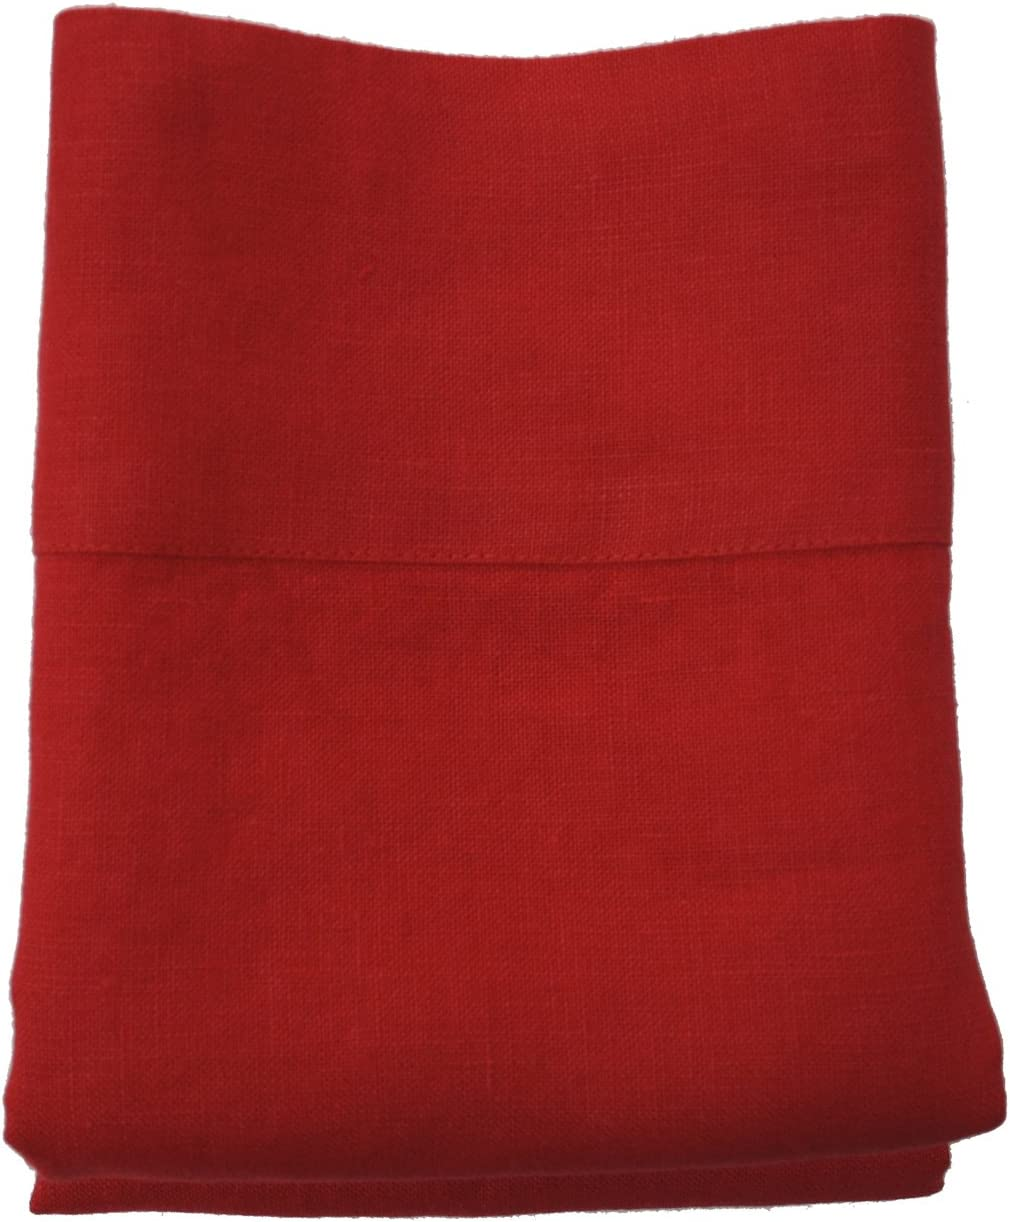 Linoto 100% Linen Pillowcases Baltimore Mall Set Size King 39x20 Max 84% OFF Red